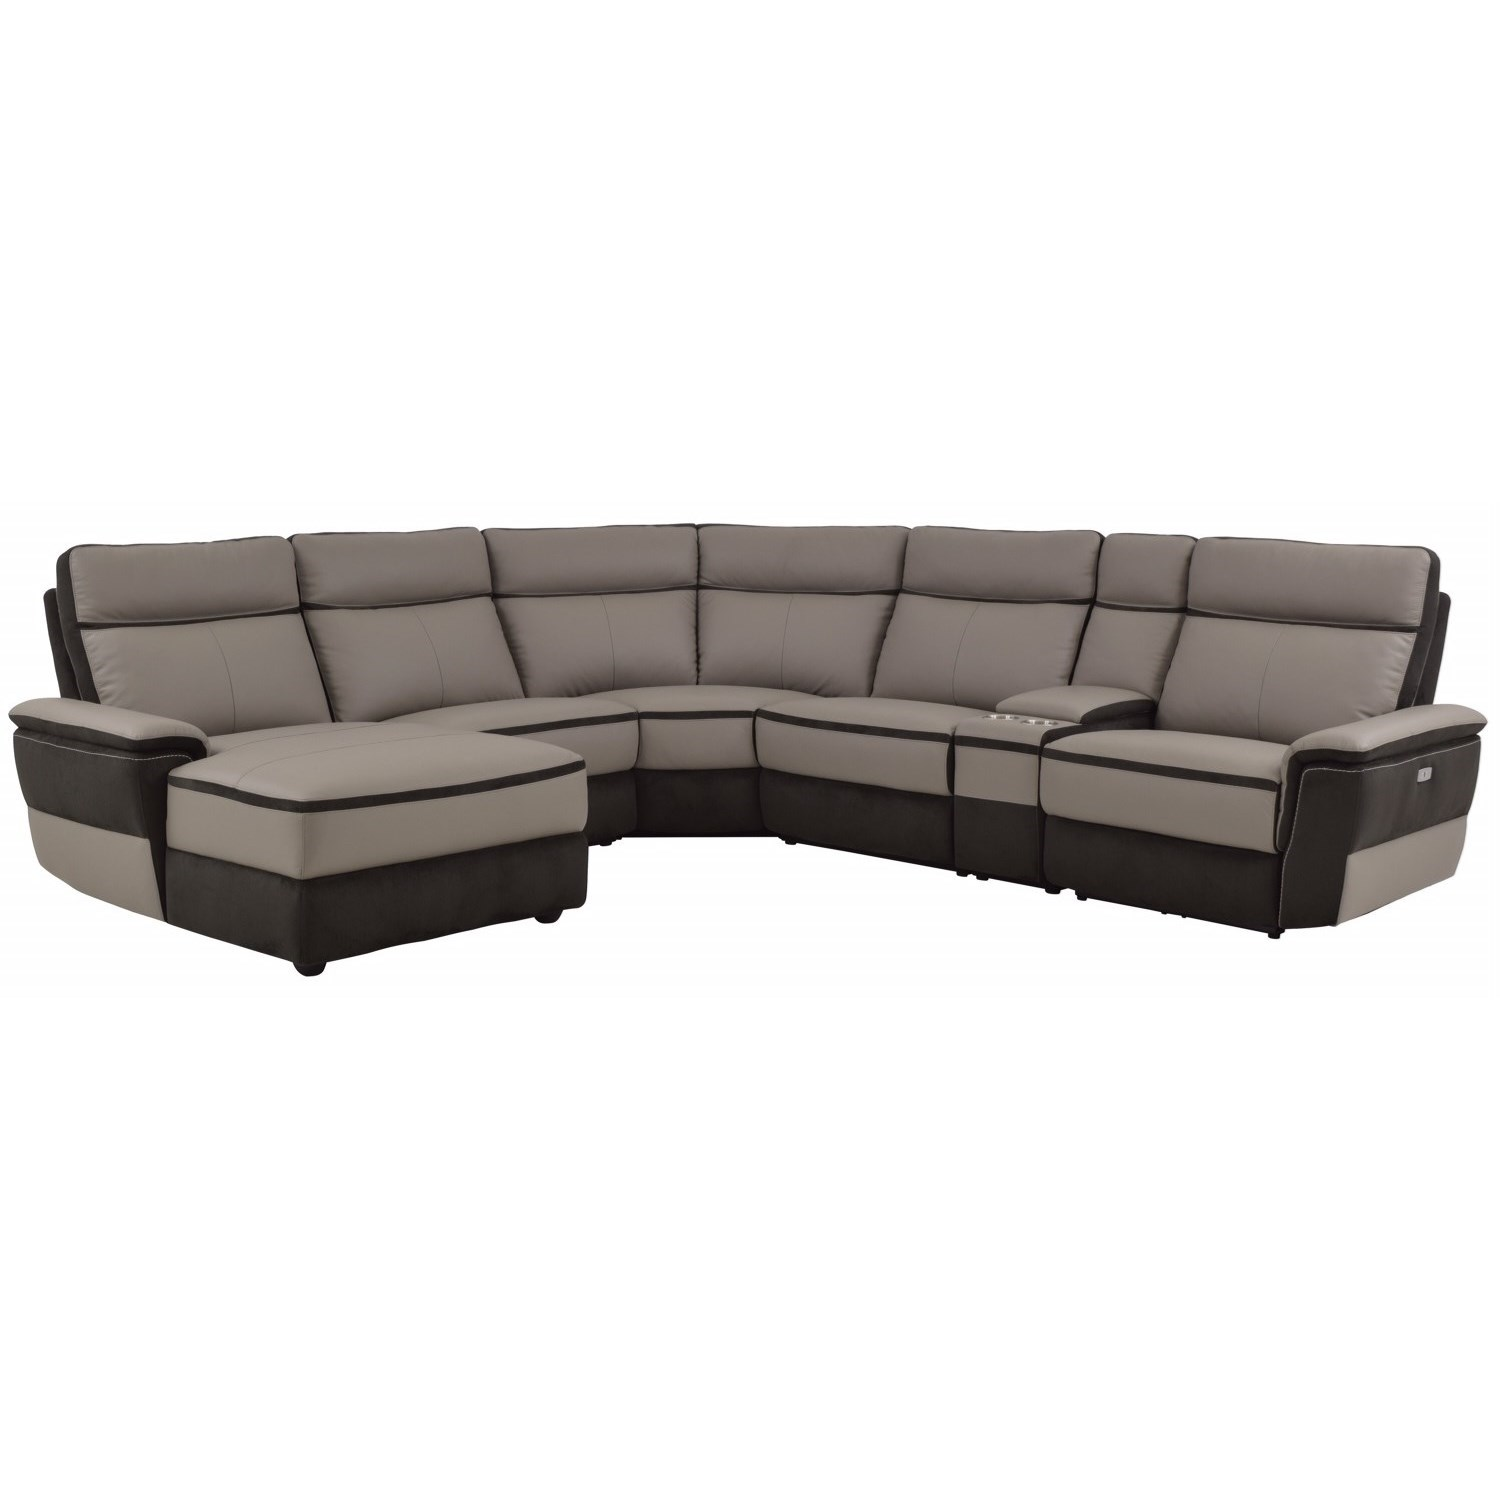 Homelegance laertes contemporary power reclining sectional for Power reclining sectional sofa with chaise